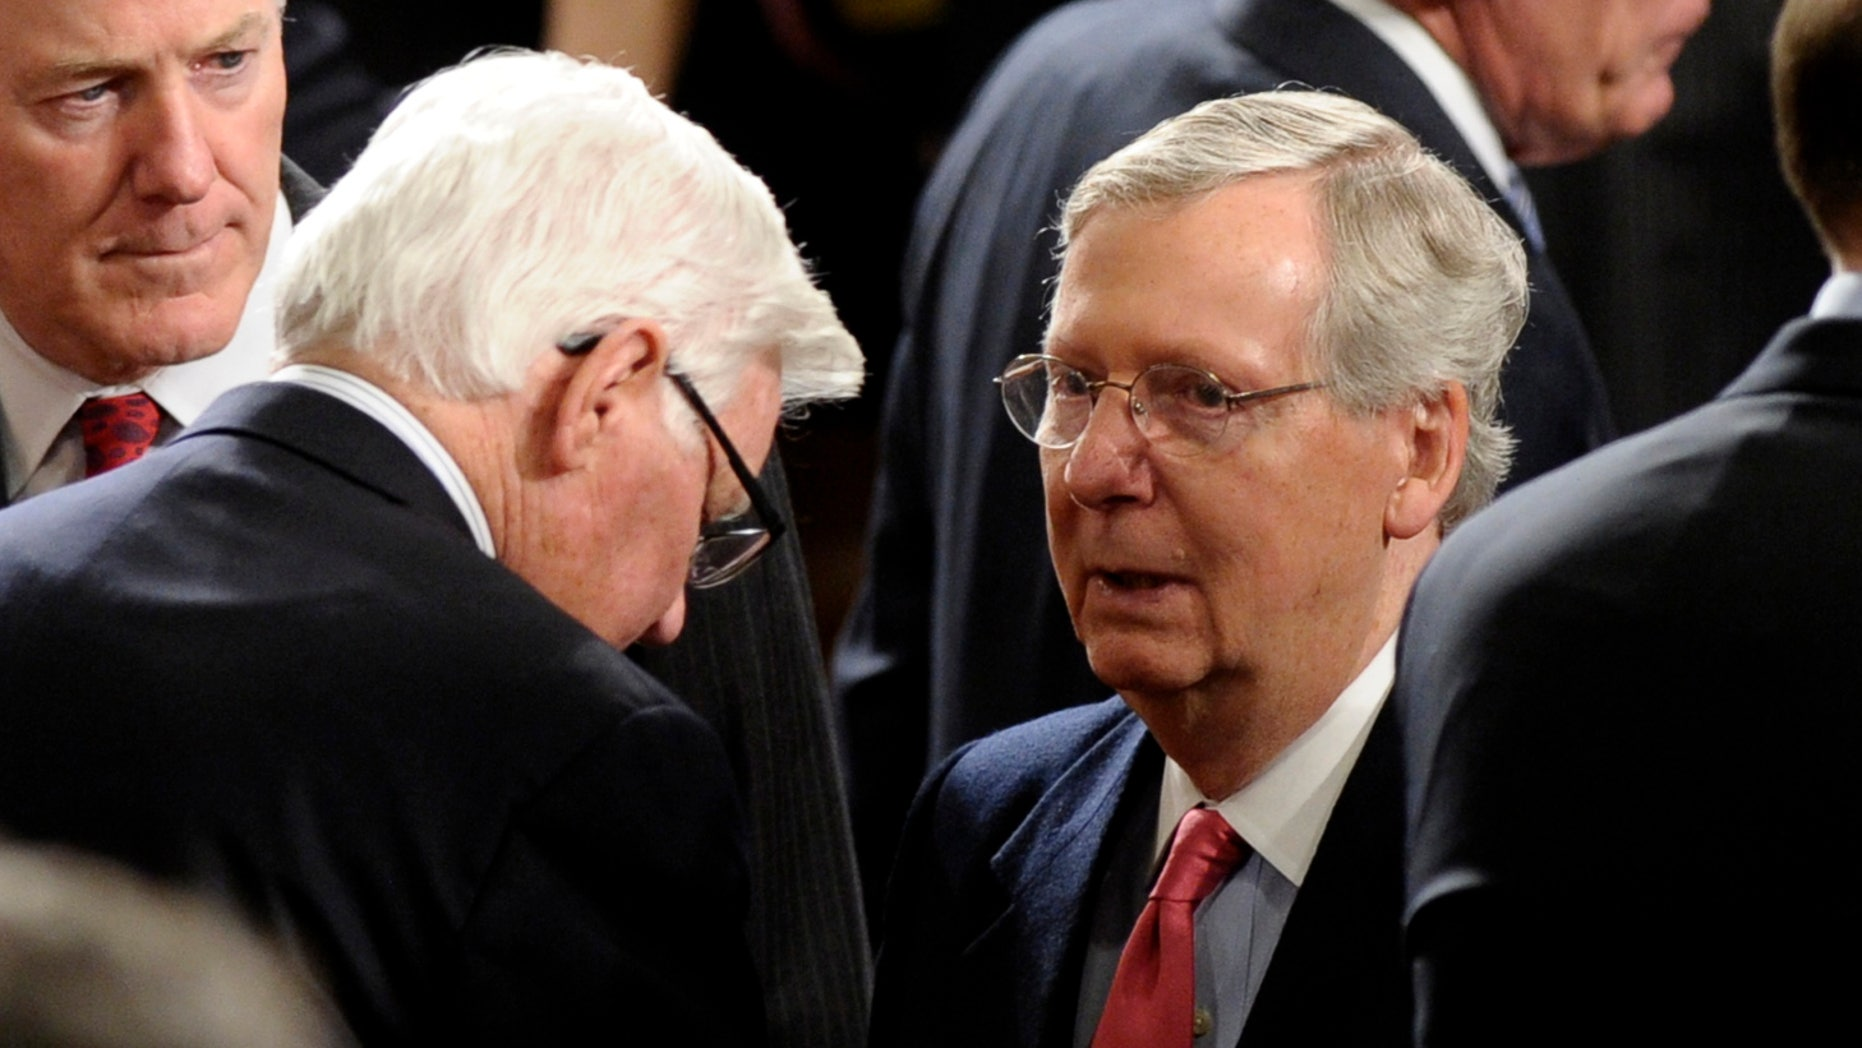 Senate Minority Leader Mitch McConnell of Ky. arrives for President Barack Obama's State of the Union address on Capitol Hill in Washington, Tuesday Jan. 28, 2014. (AP Photo/Susan Walsh)